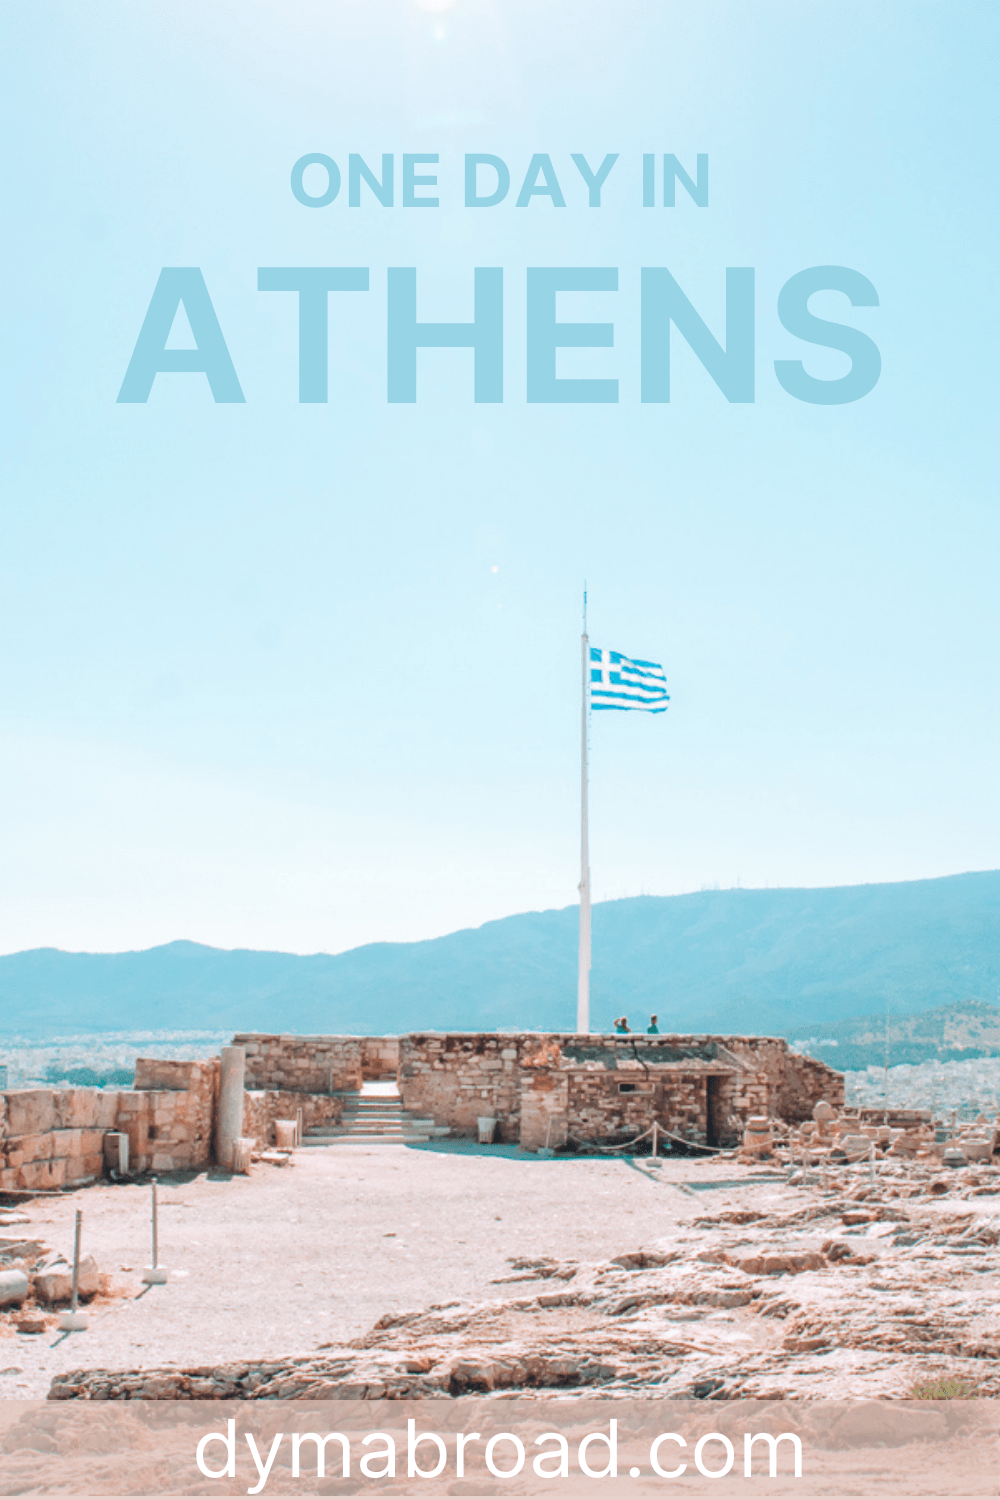 Second Pinterest image one day in Athens